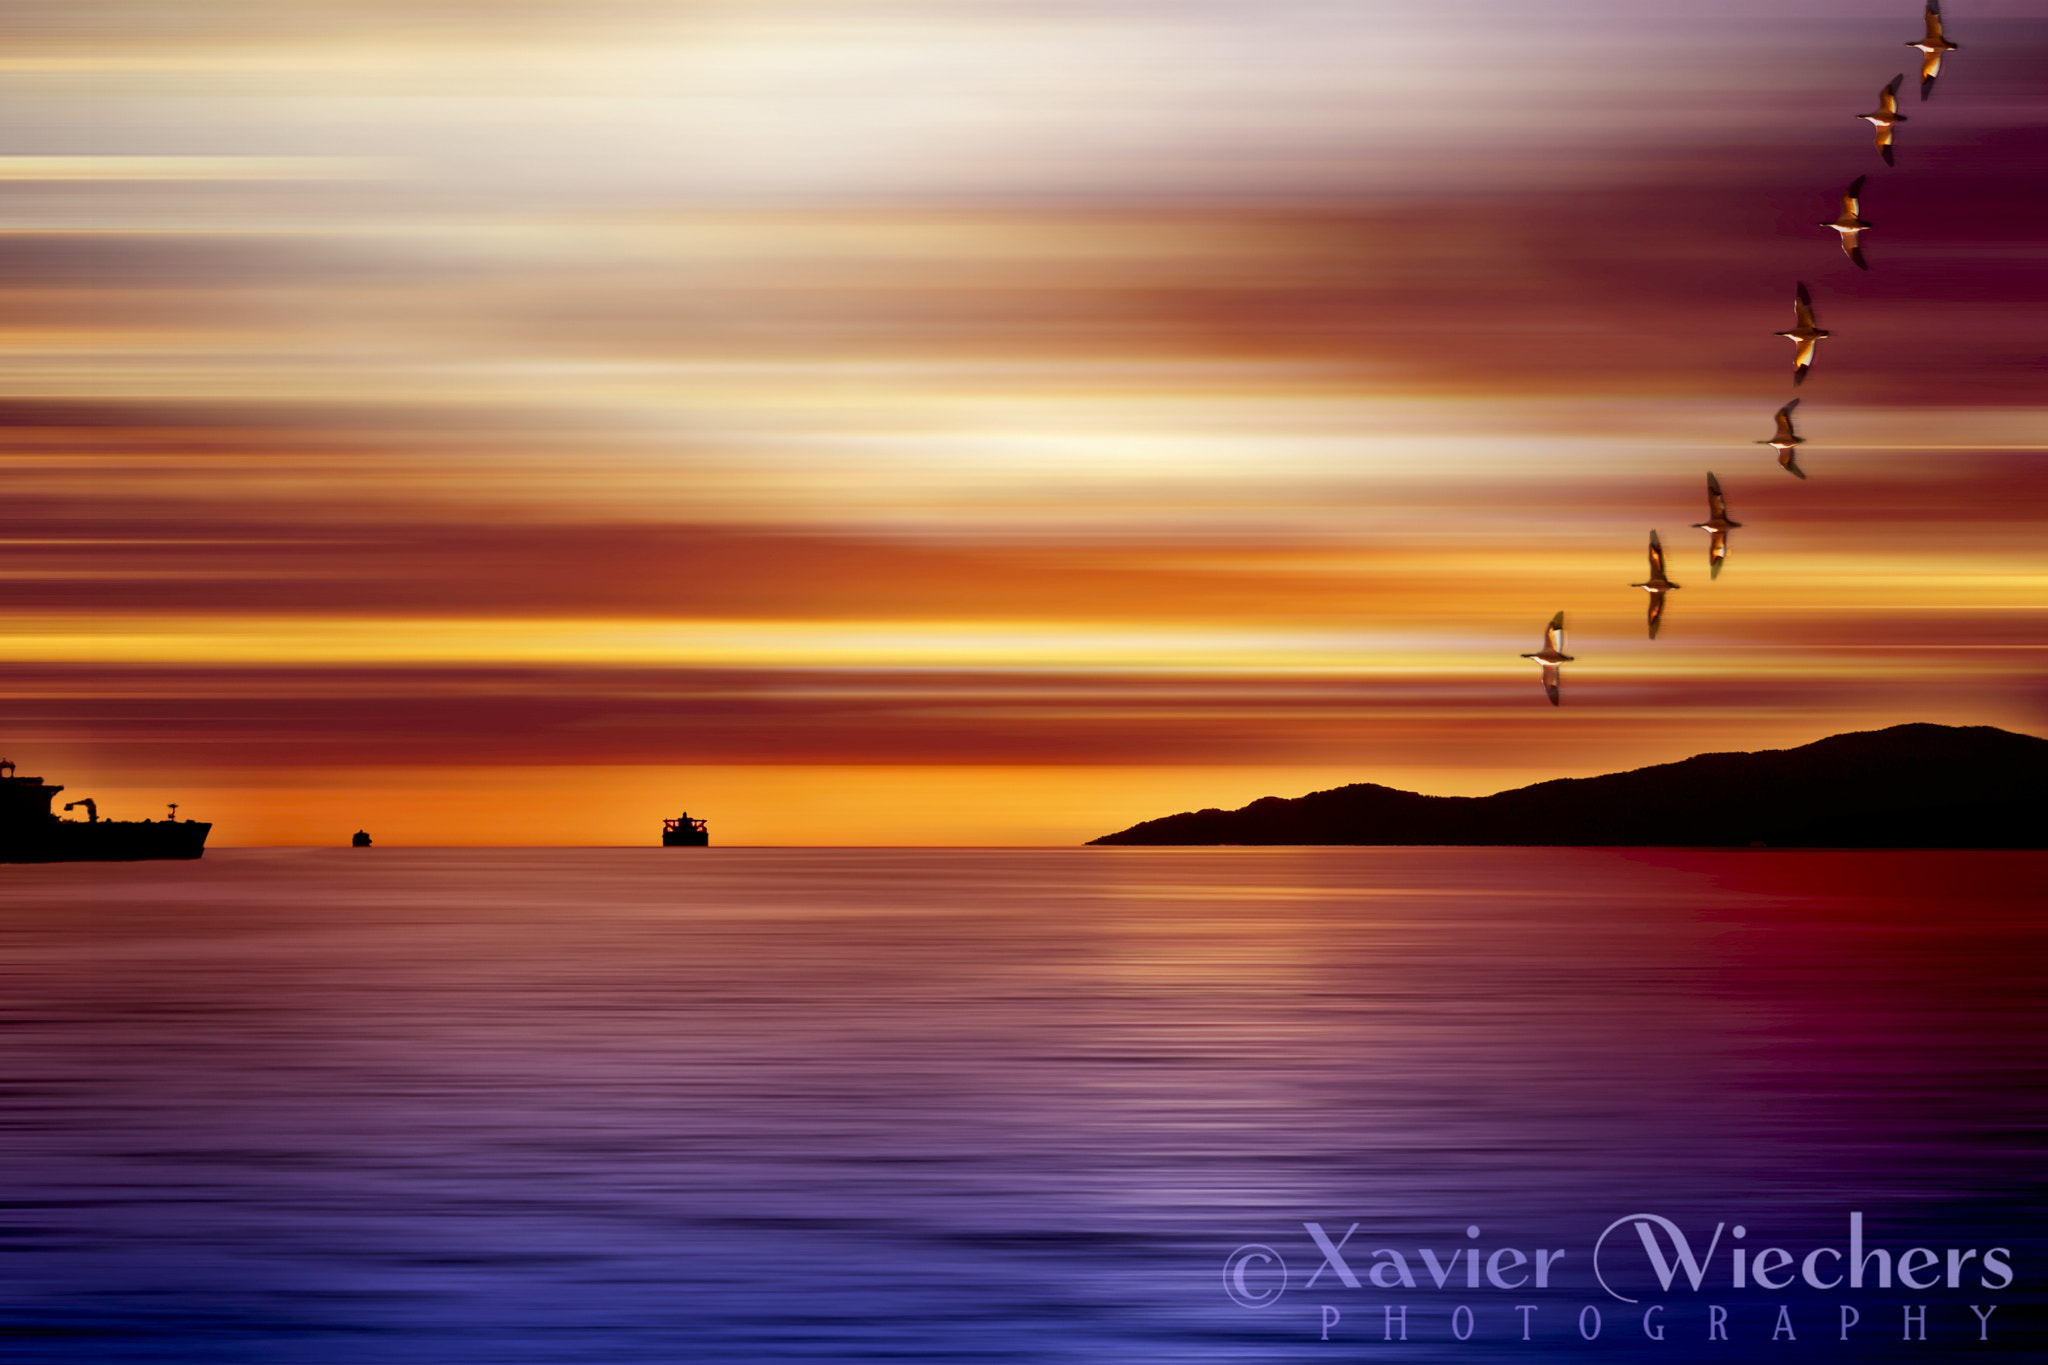 Photograph Sunset At Vancouver II by Xavier Wiechers on 500px